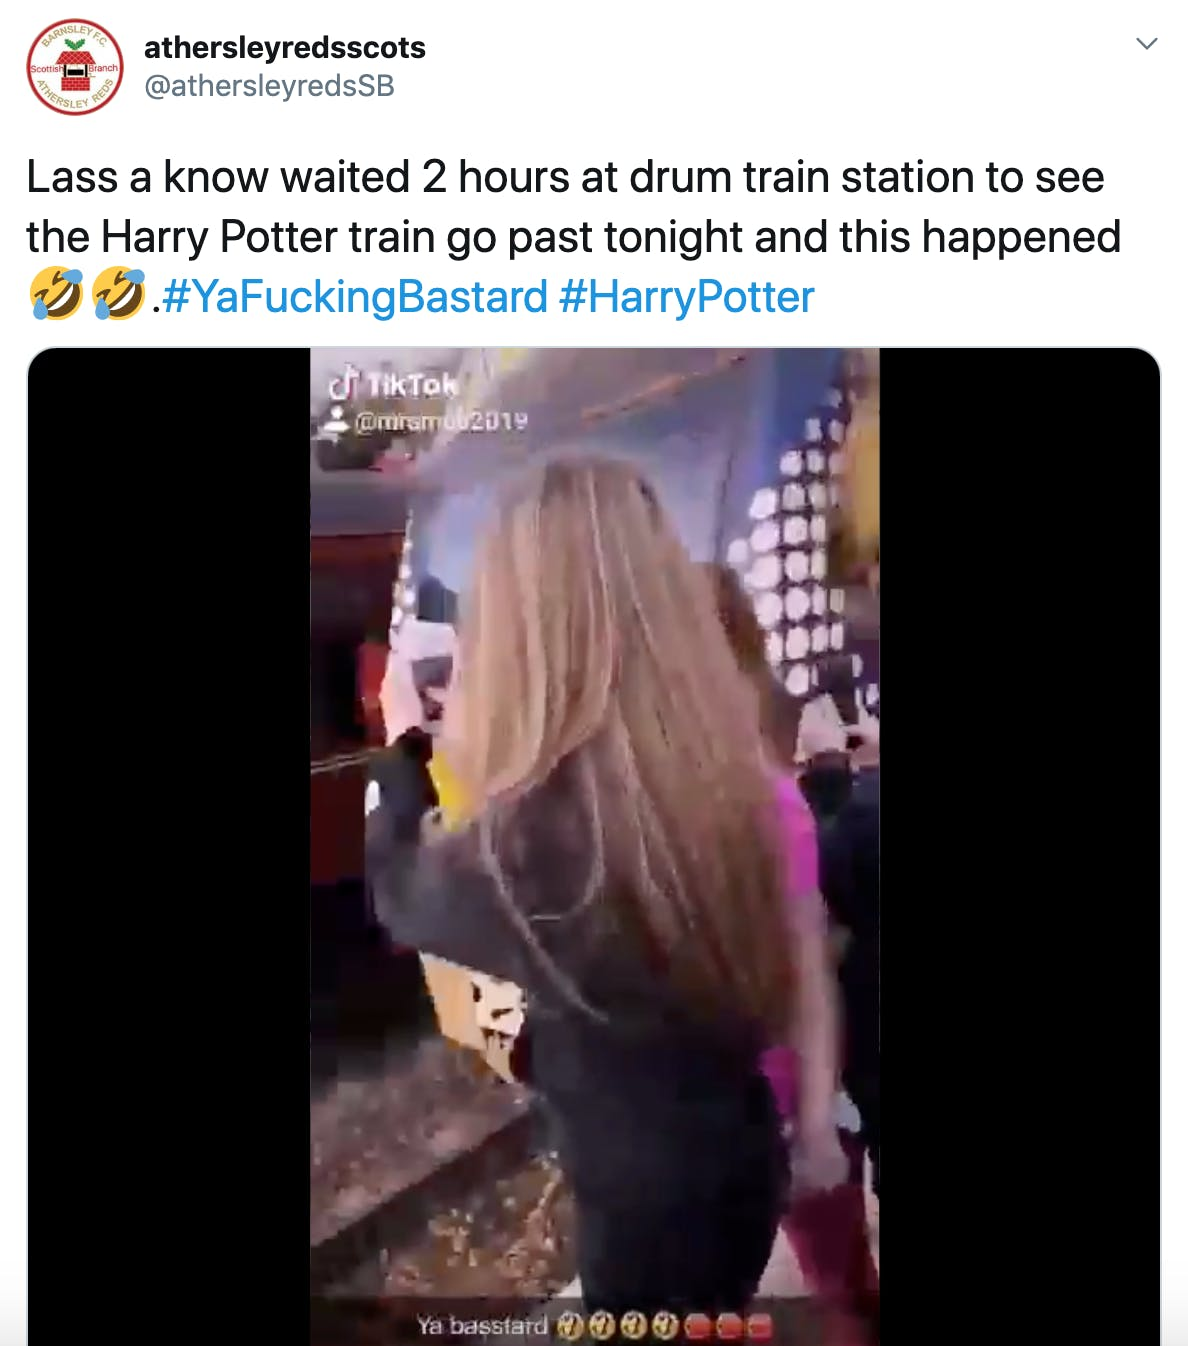 """""""Lass a know waited 2 hours at drum train station to see the Harry Potter train go past tonight and this happened Rolling on the floor laughingRolling on the floor laughing.#YaFuckingBastard #HarryPotter"""" embedded tiktok shared above"""